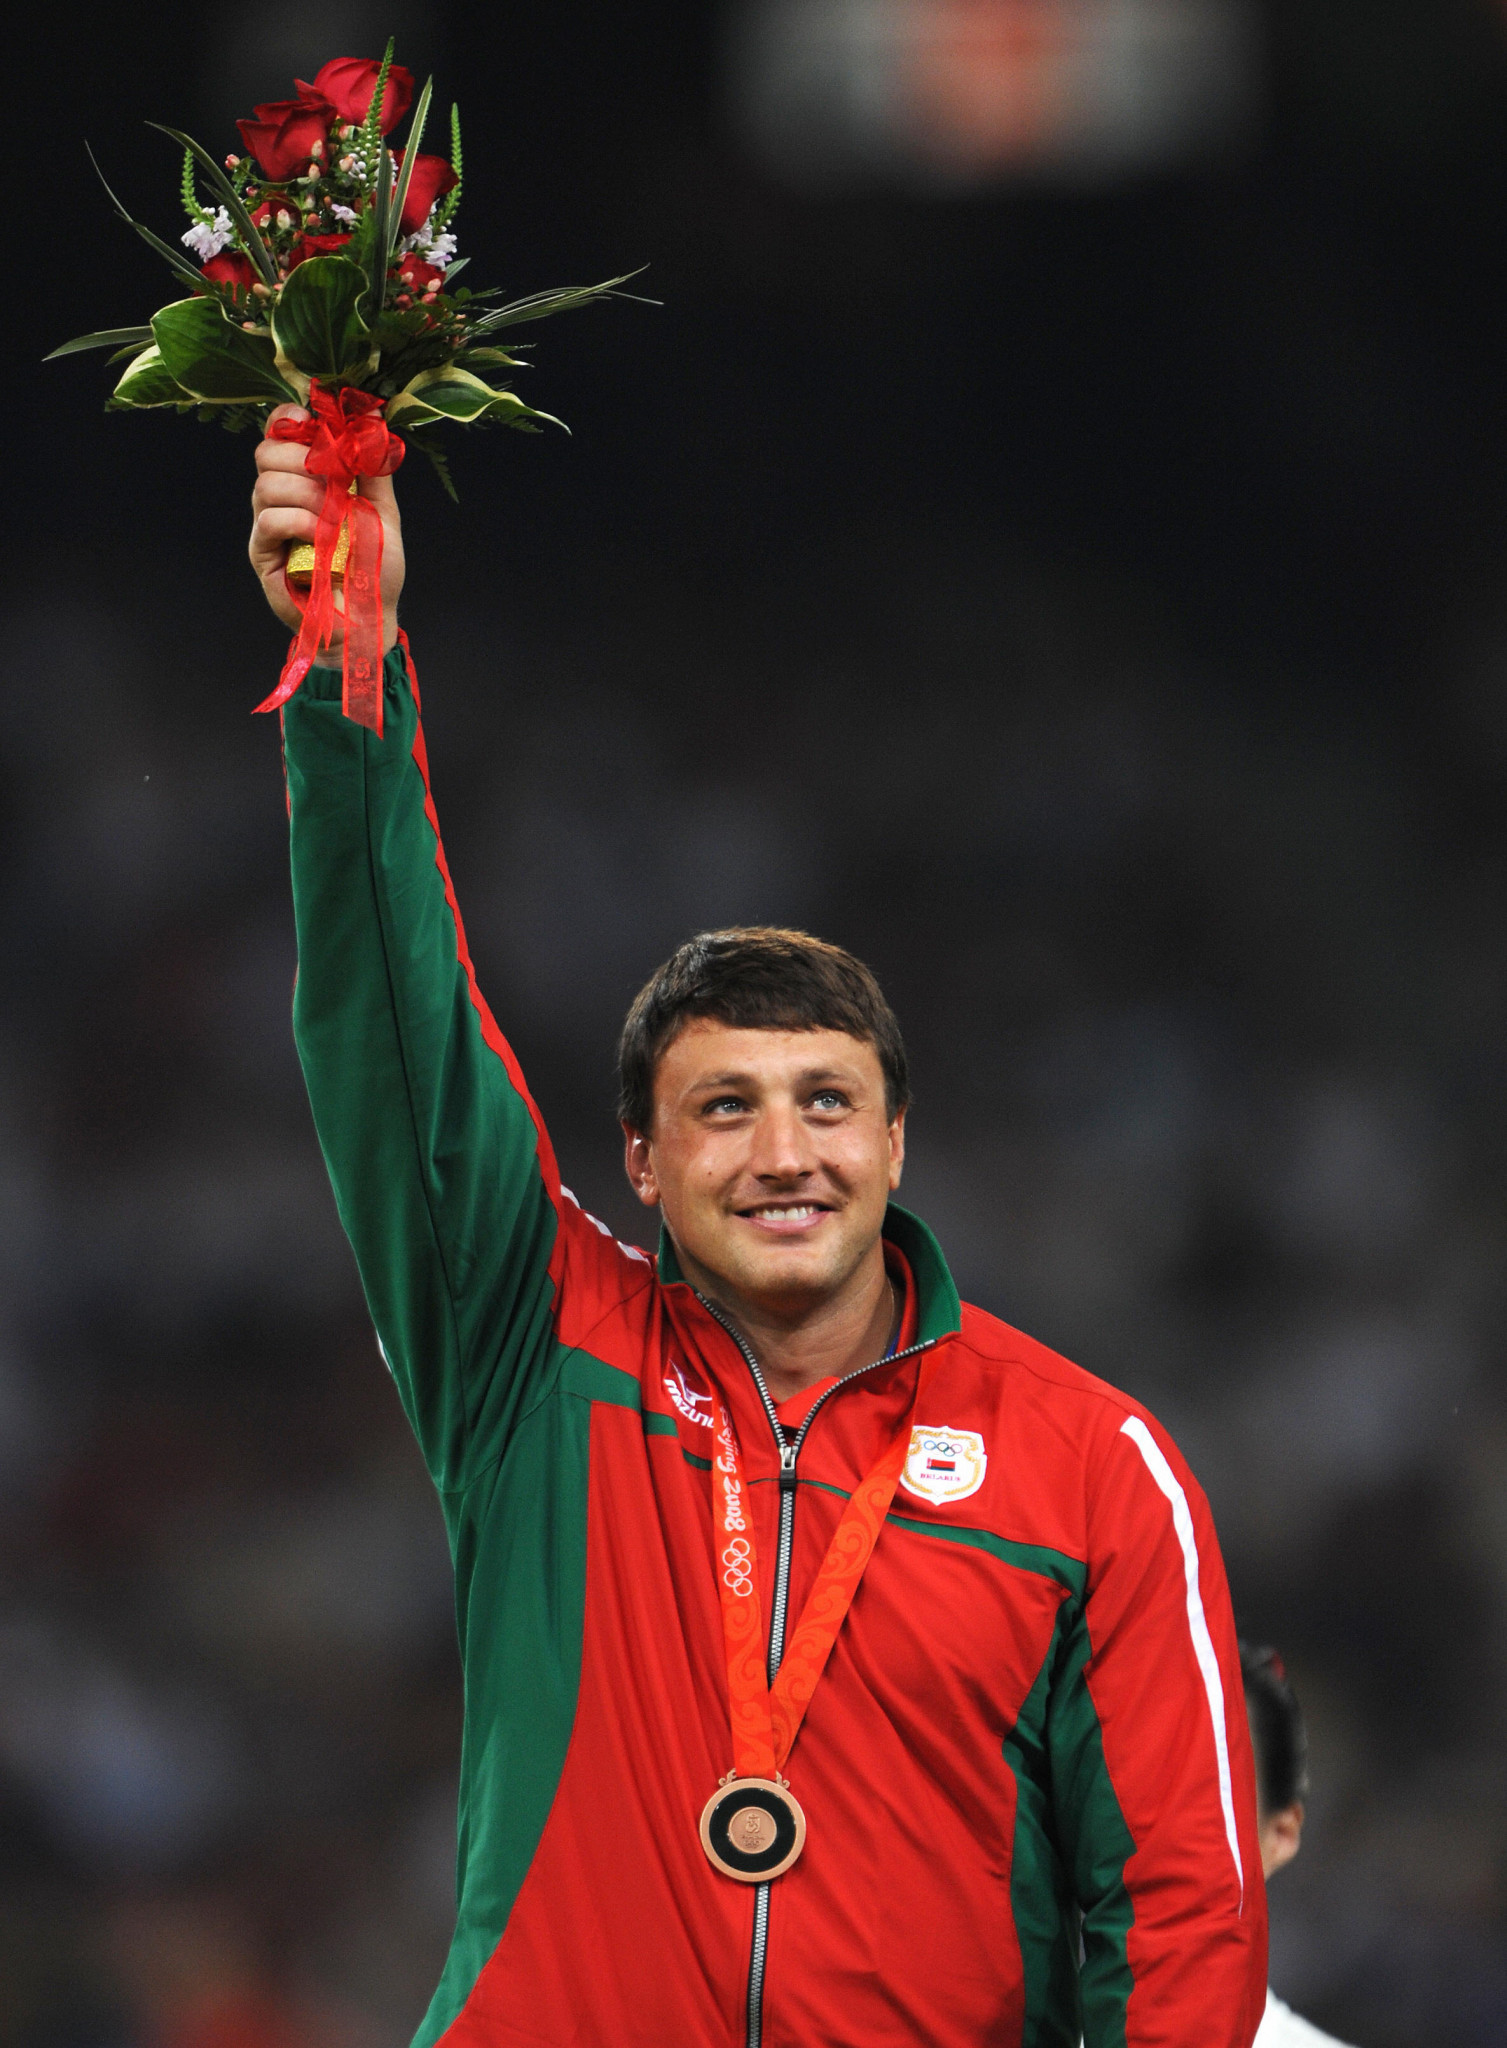 Ivan Tsikhan celebrates winning the Olympic bronze medal in the hammer at Beijing 2008 before he was stripped of it and then had it returned following a technicality ©Getty Images